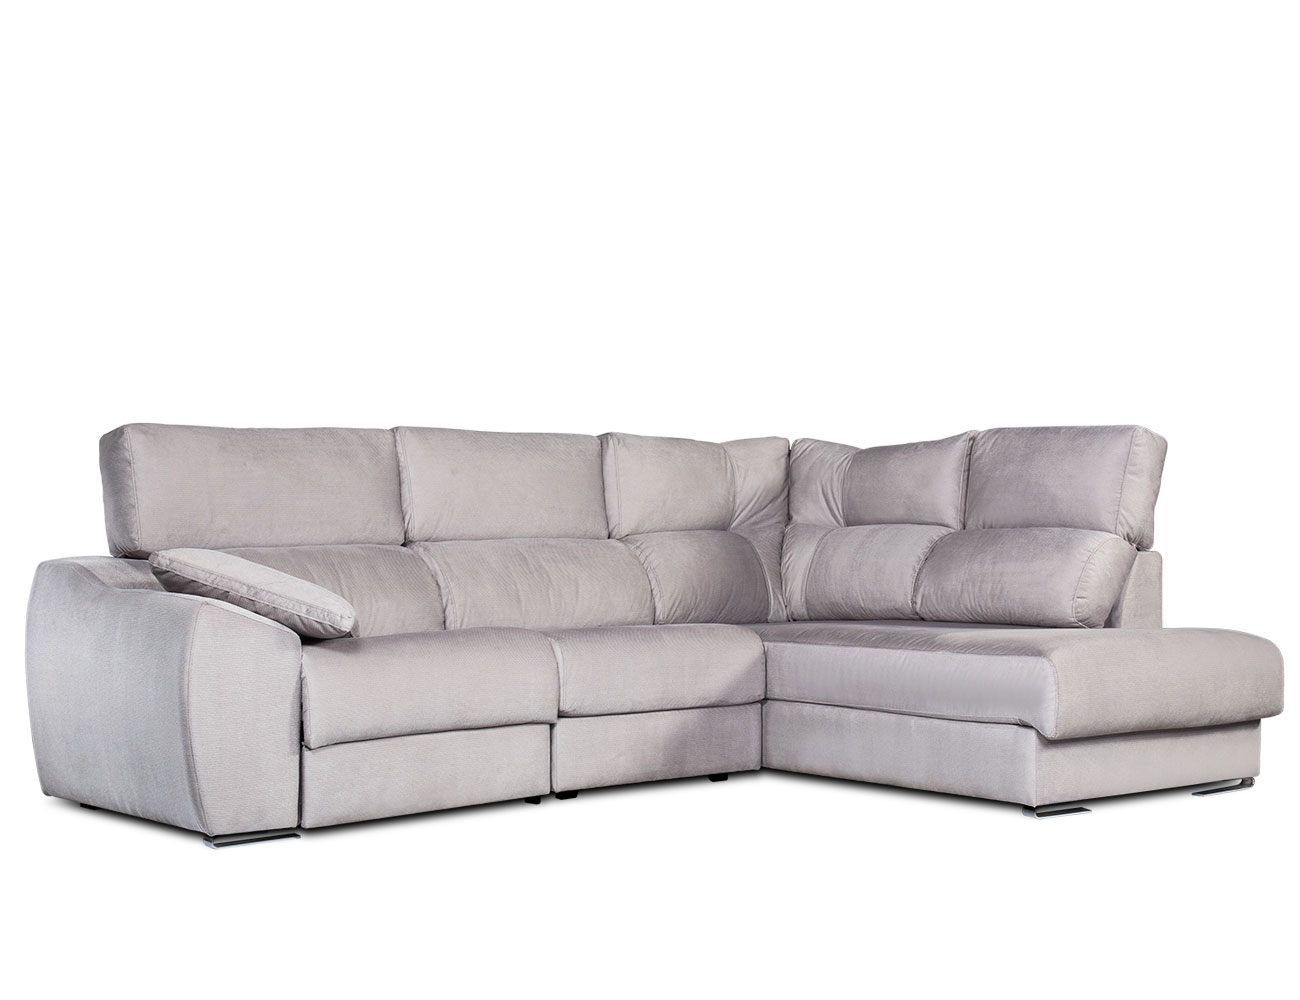 Sofa chaiselongue rincon electrico2